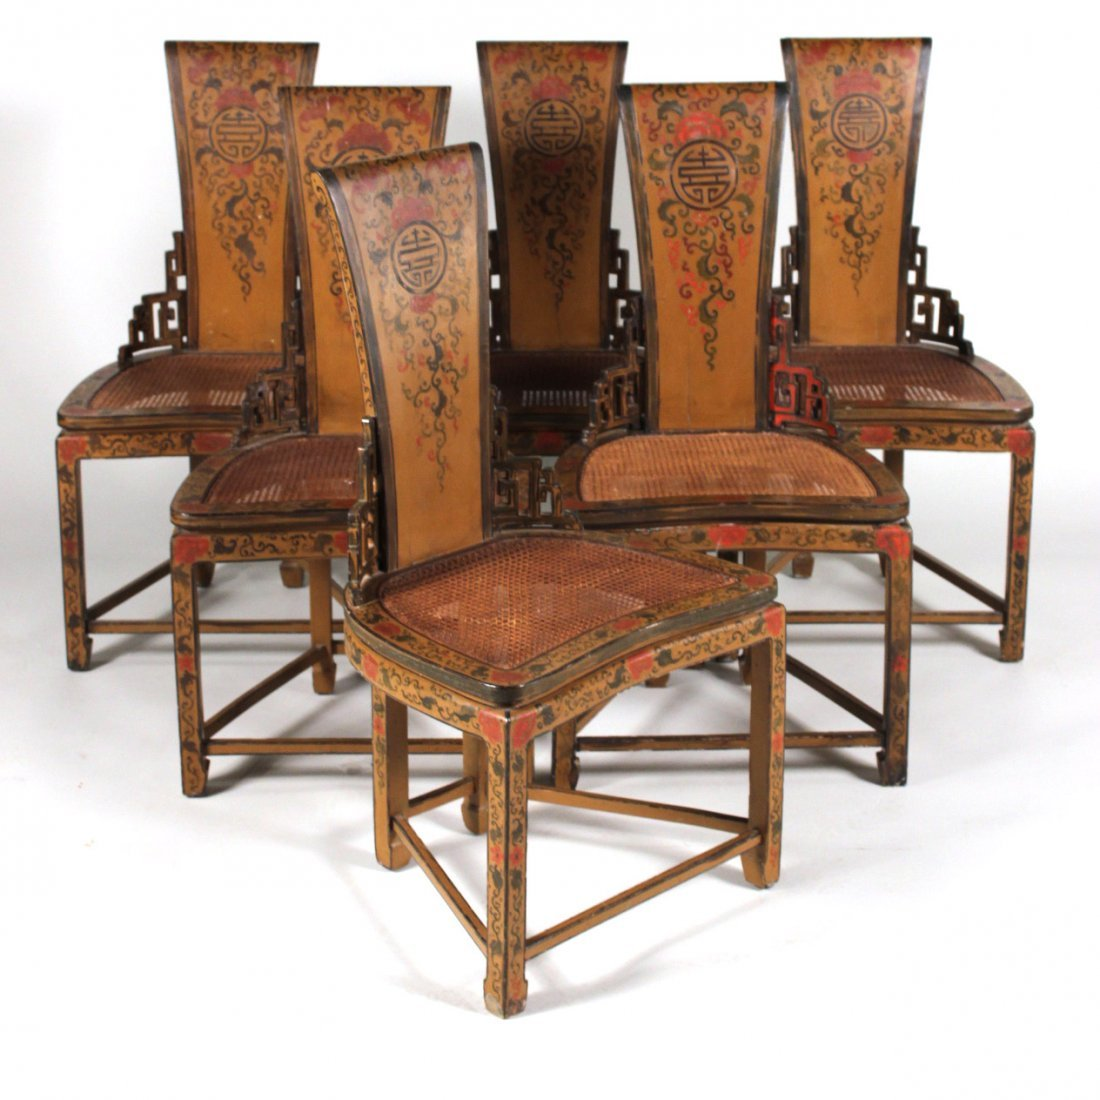 Six Chinoiserie Decorated Armless Chairs